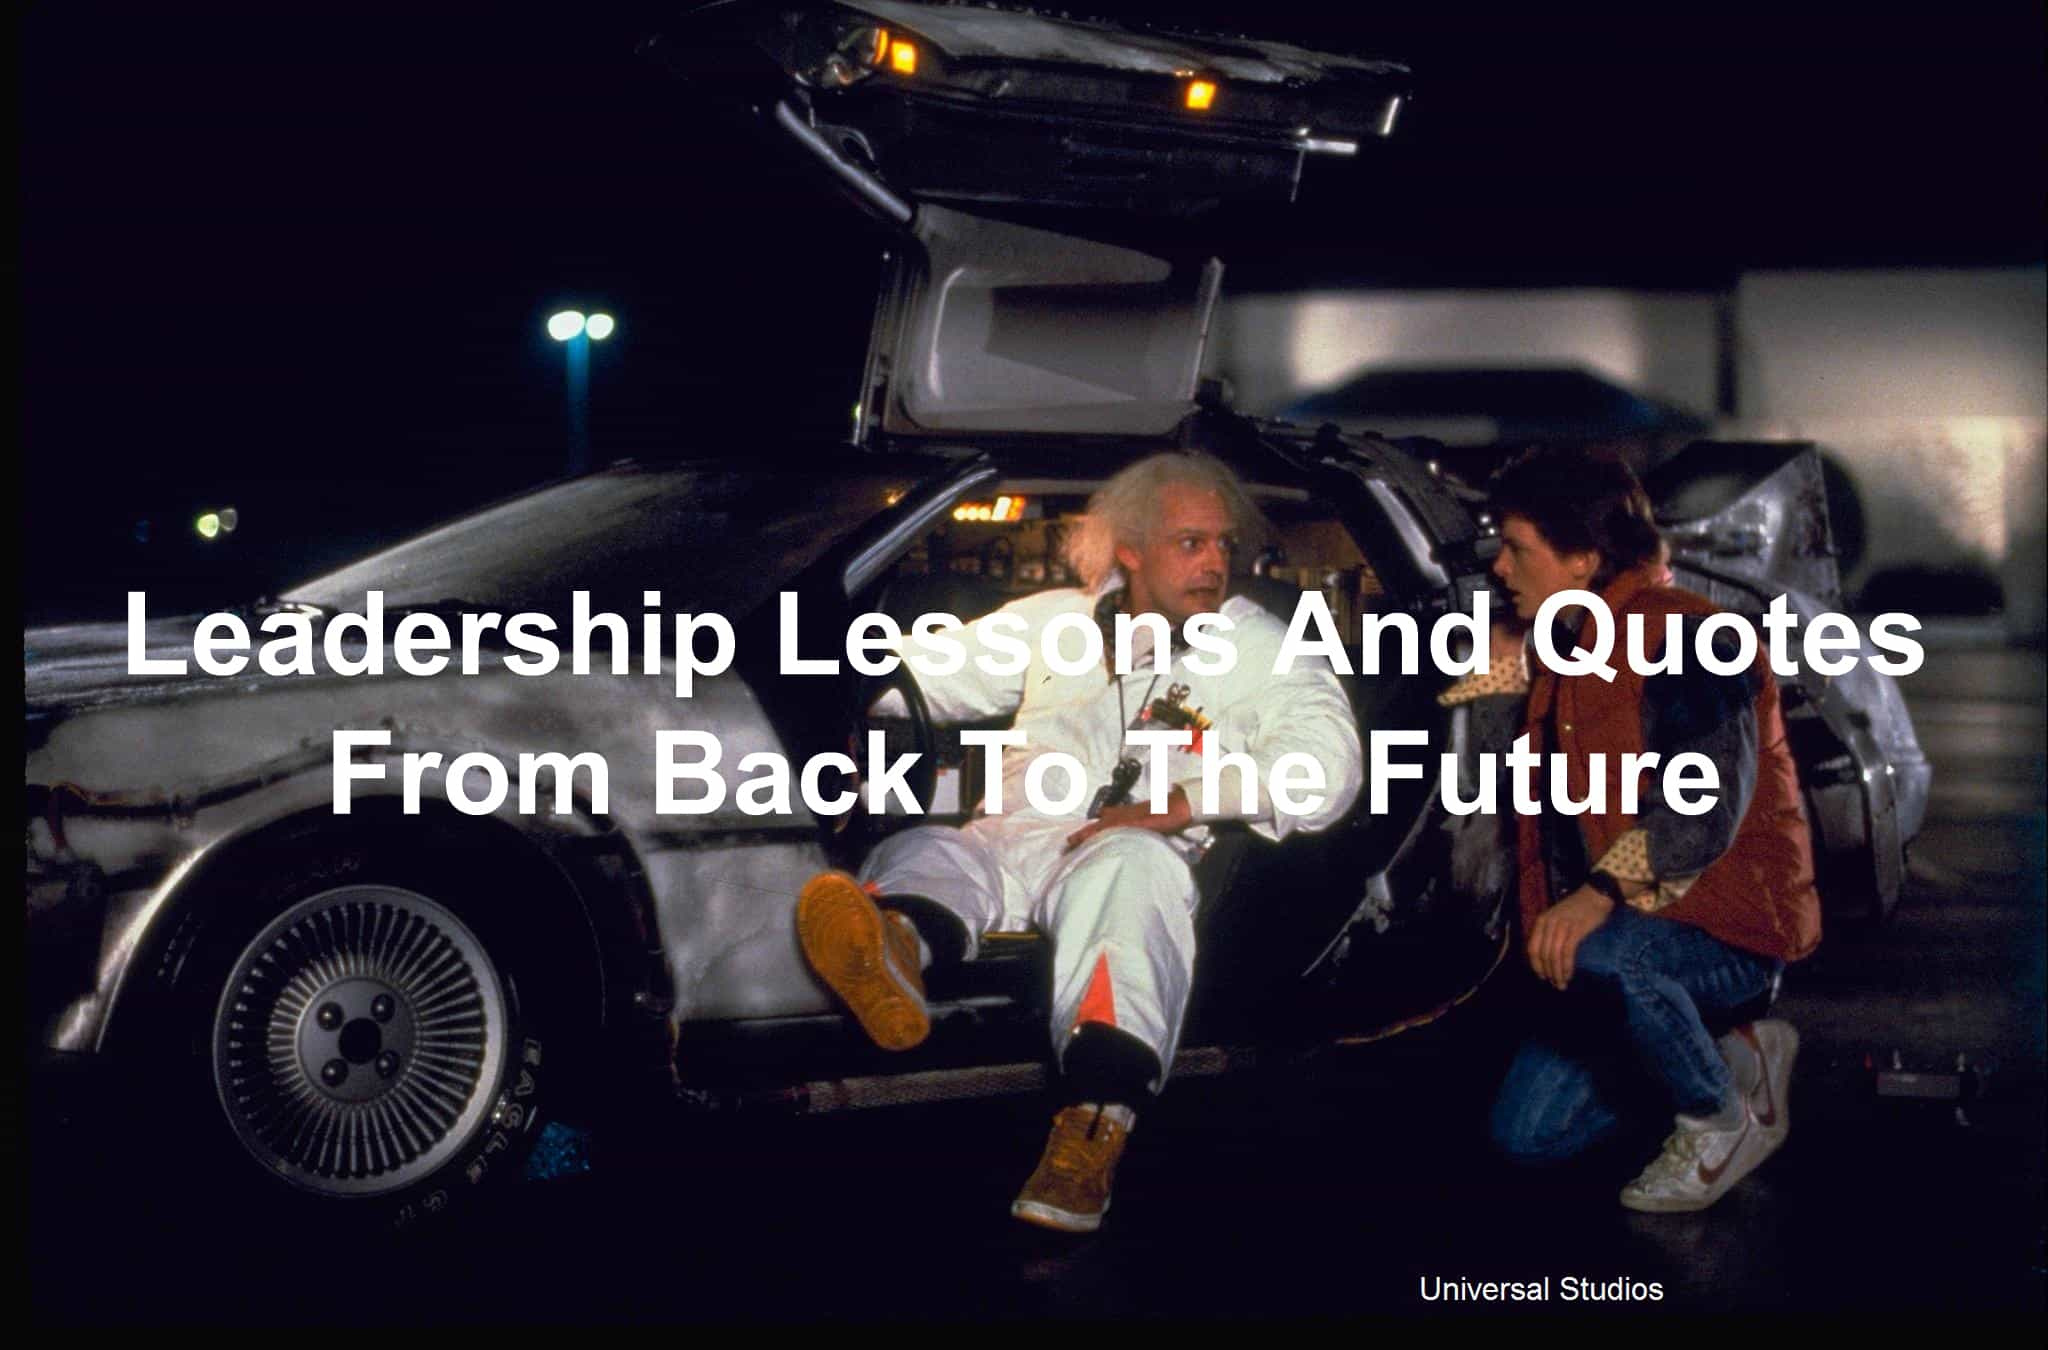 Doc Brown and Marty McFly in a DeLorean - Leadership lessons and quotes from Back To The Future